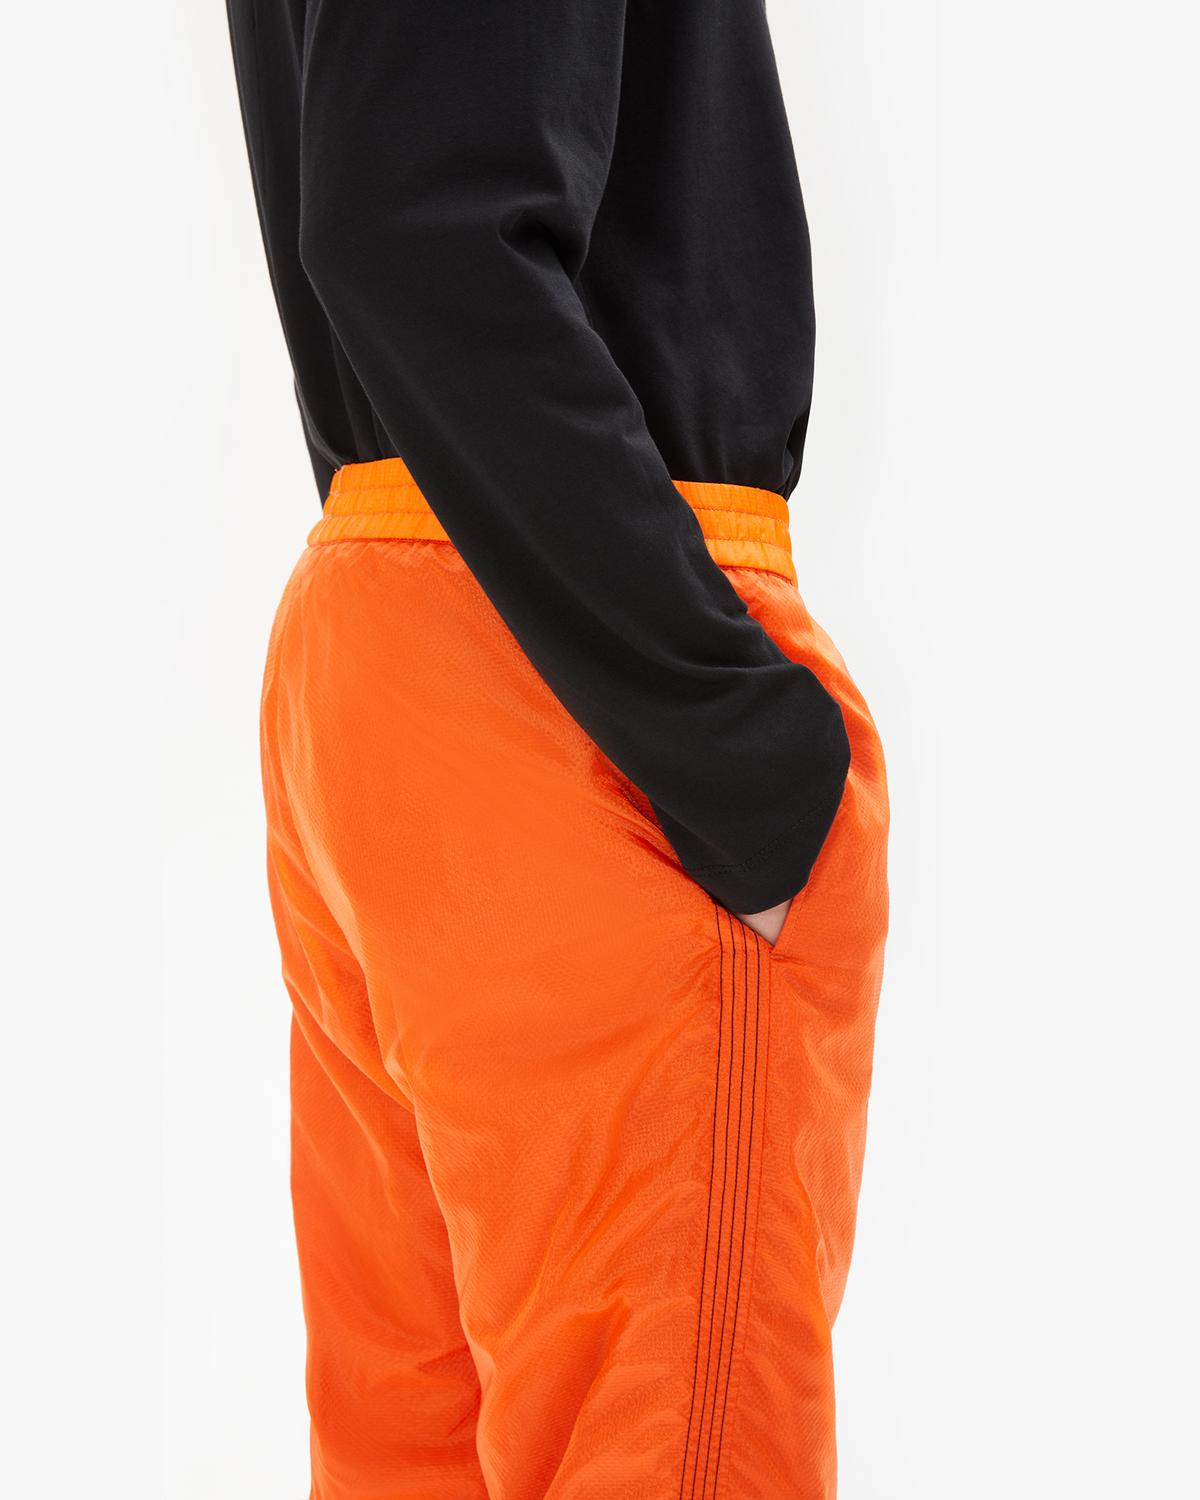 RIPSTOP PARACHUTE PULL ON PANT